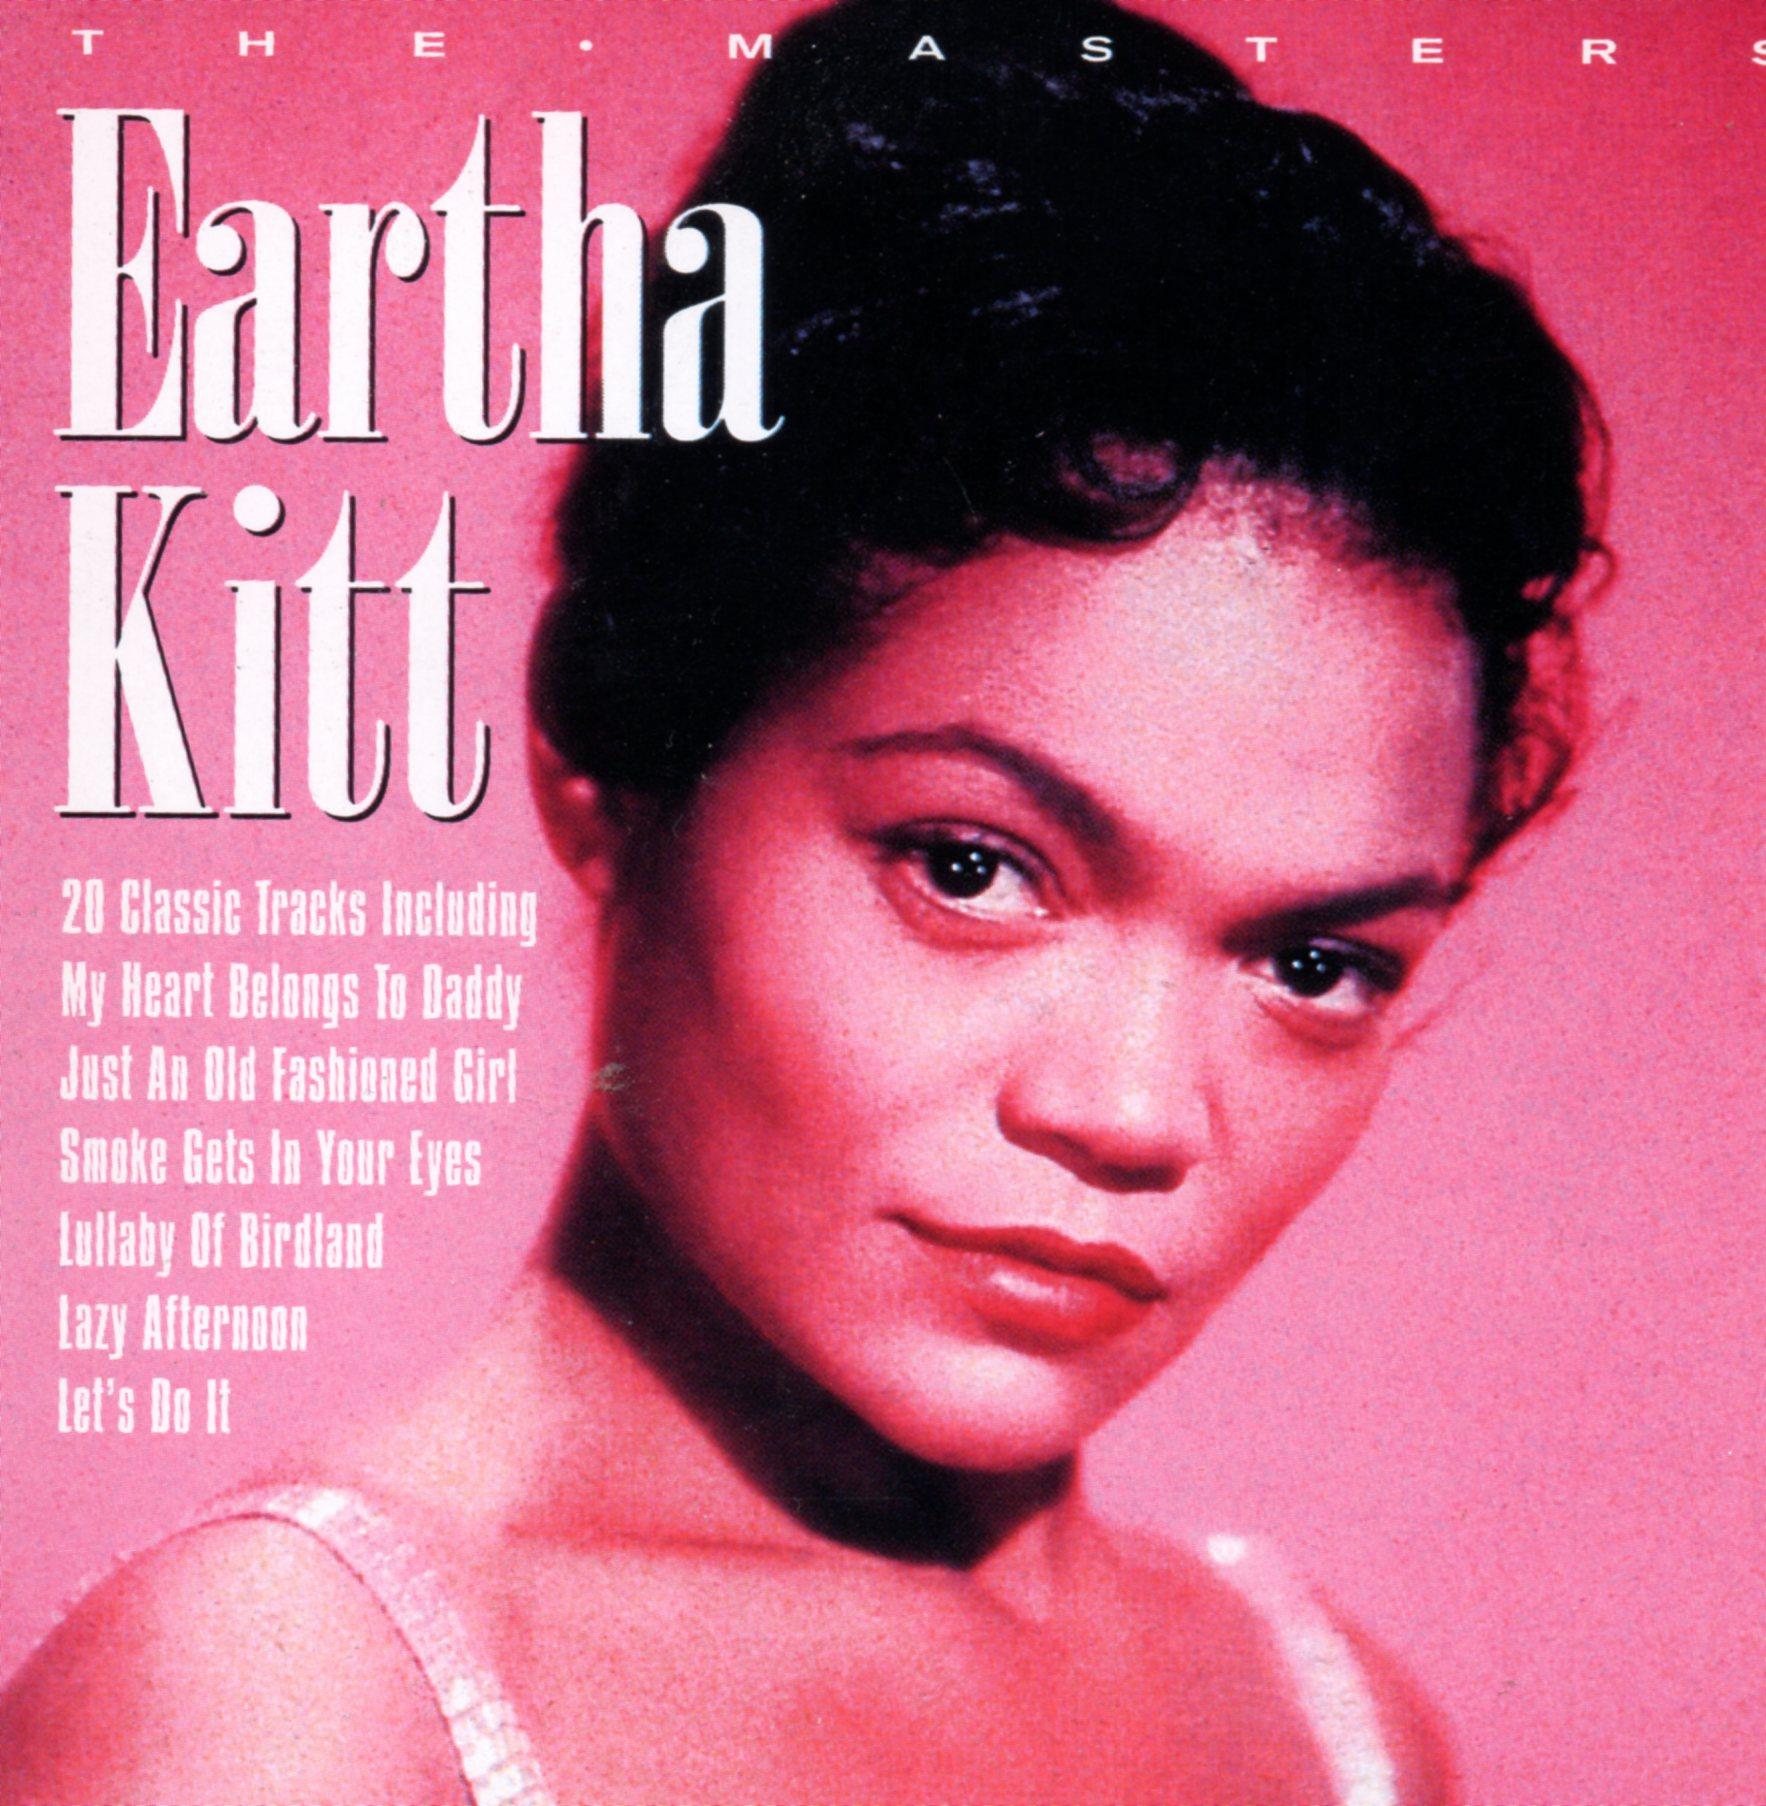 EARTHA KITT - The masters 20-track - CD